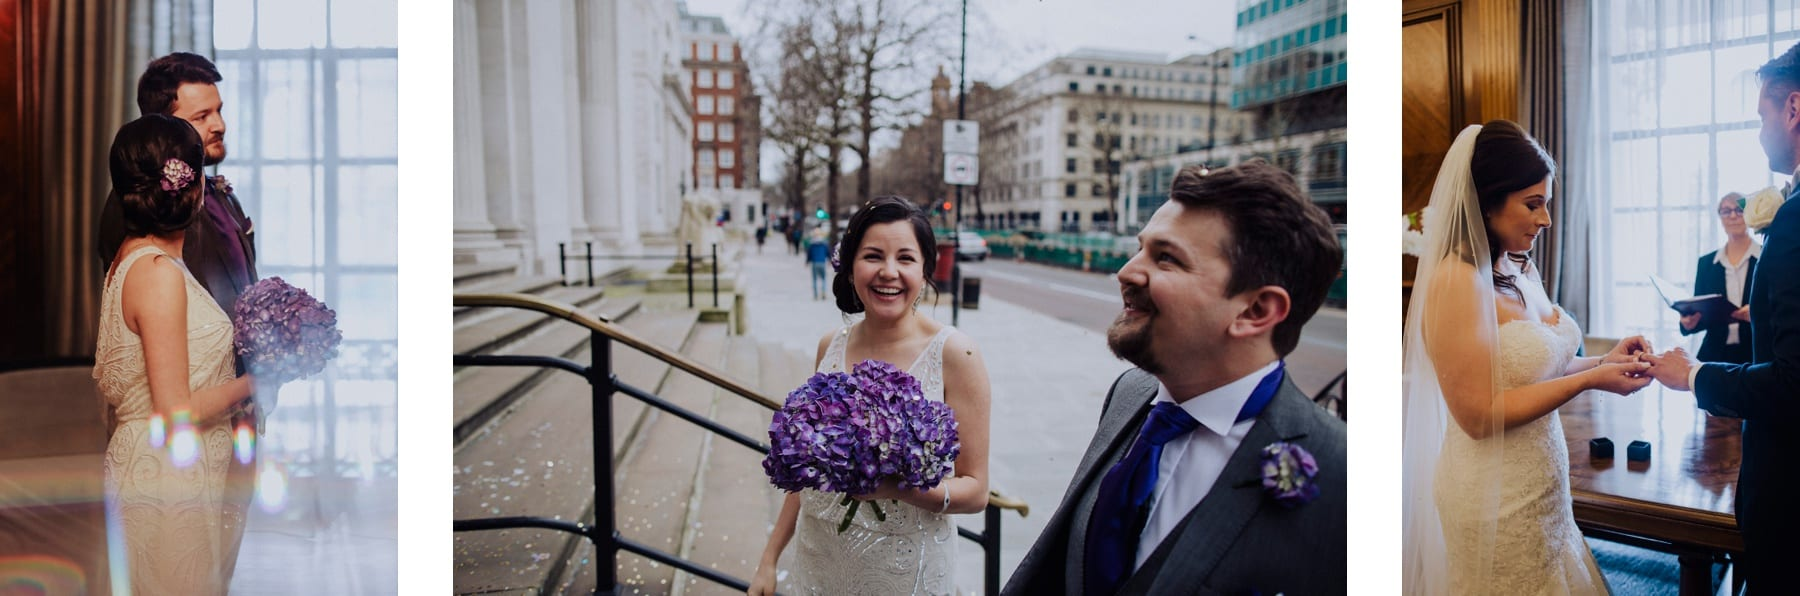 Couple getting married at Hackney Town Hall